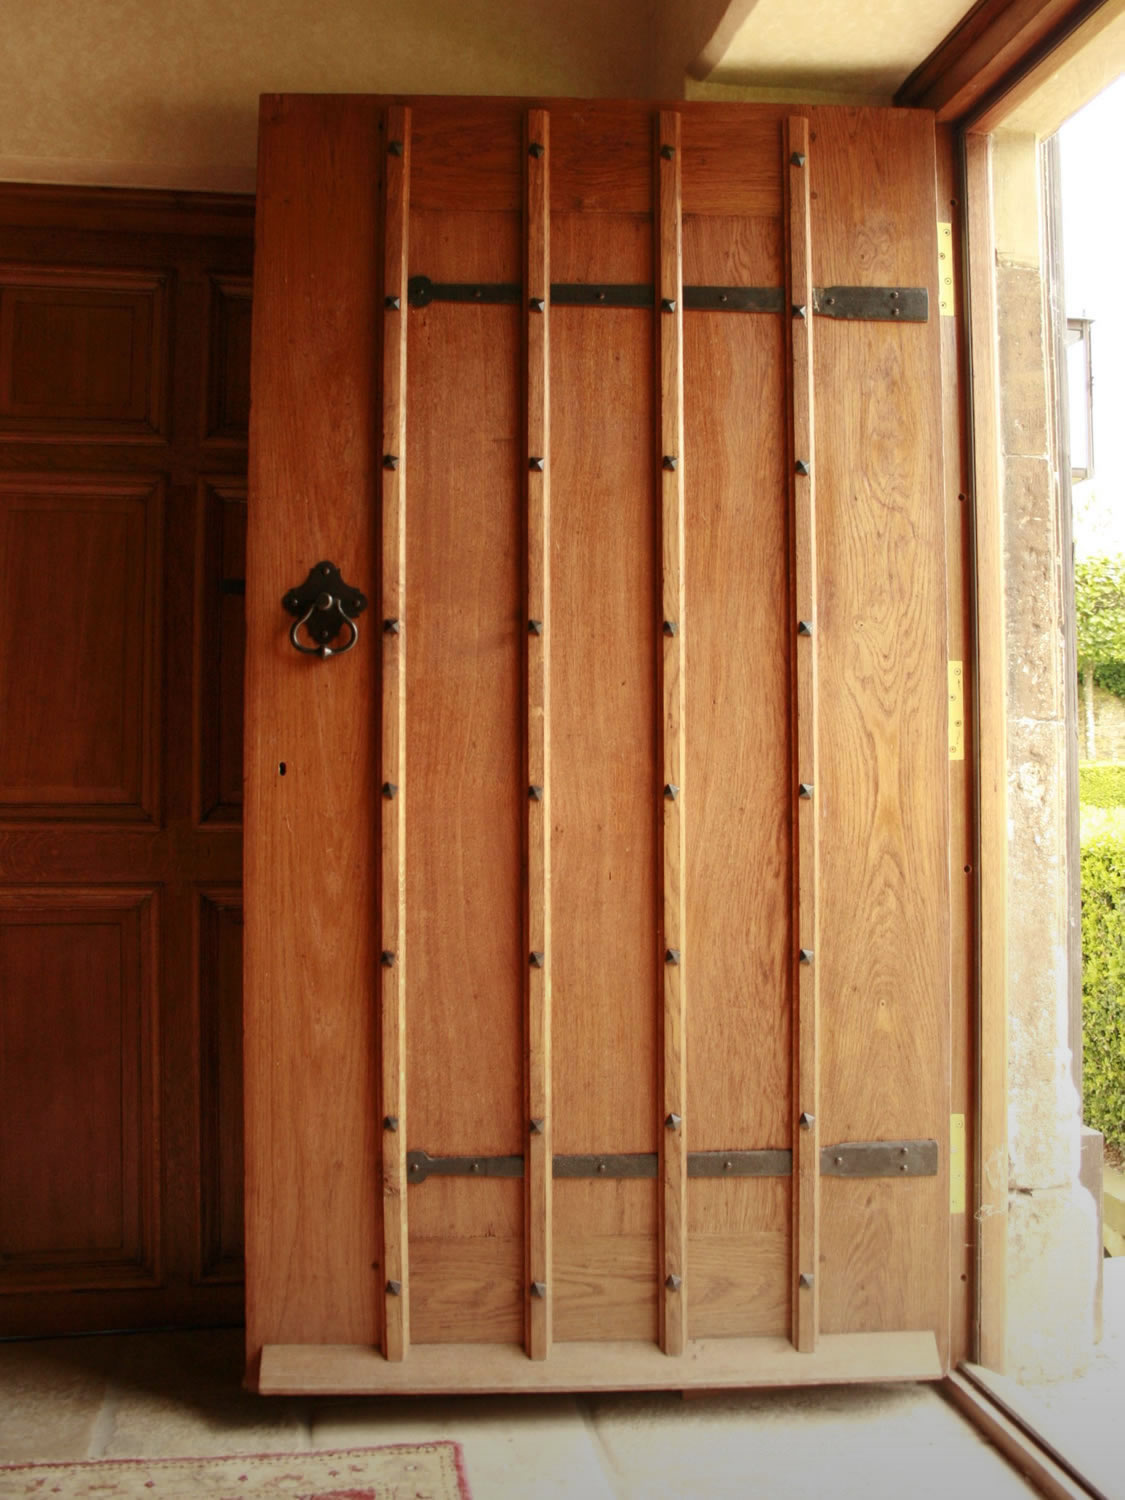 Soild oak front door for an Oxfordshire Manor